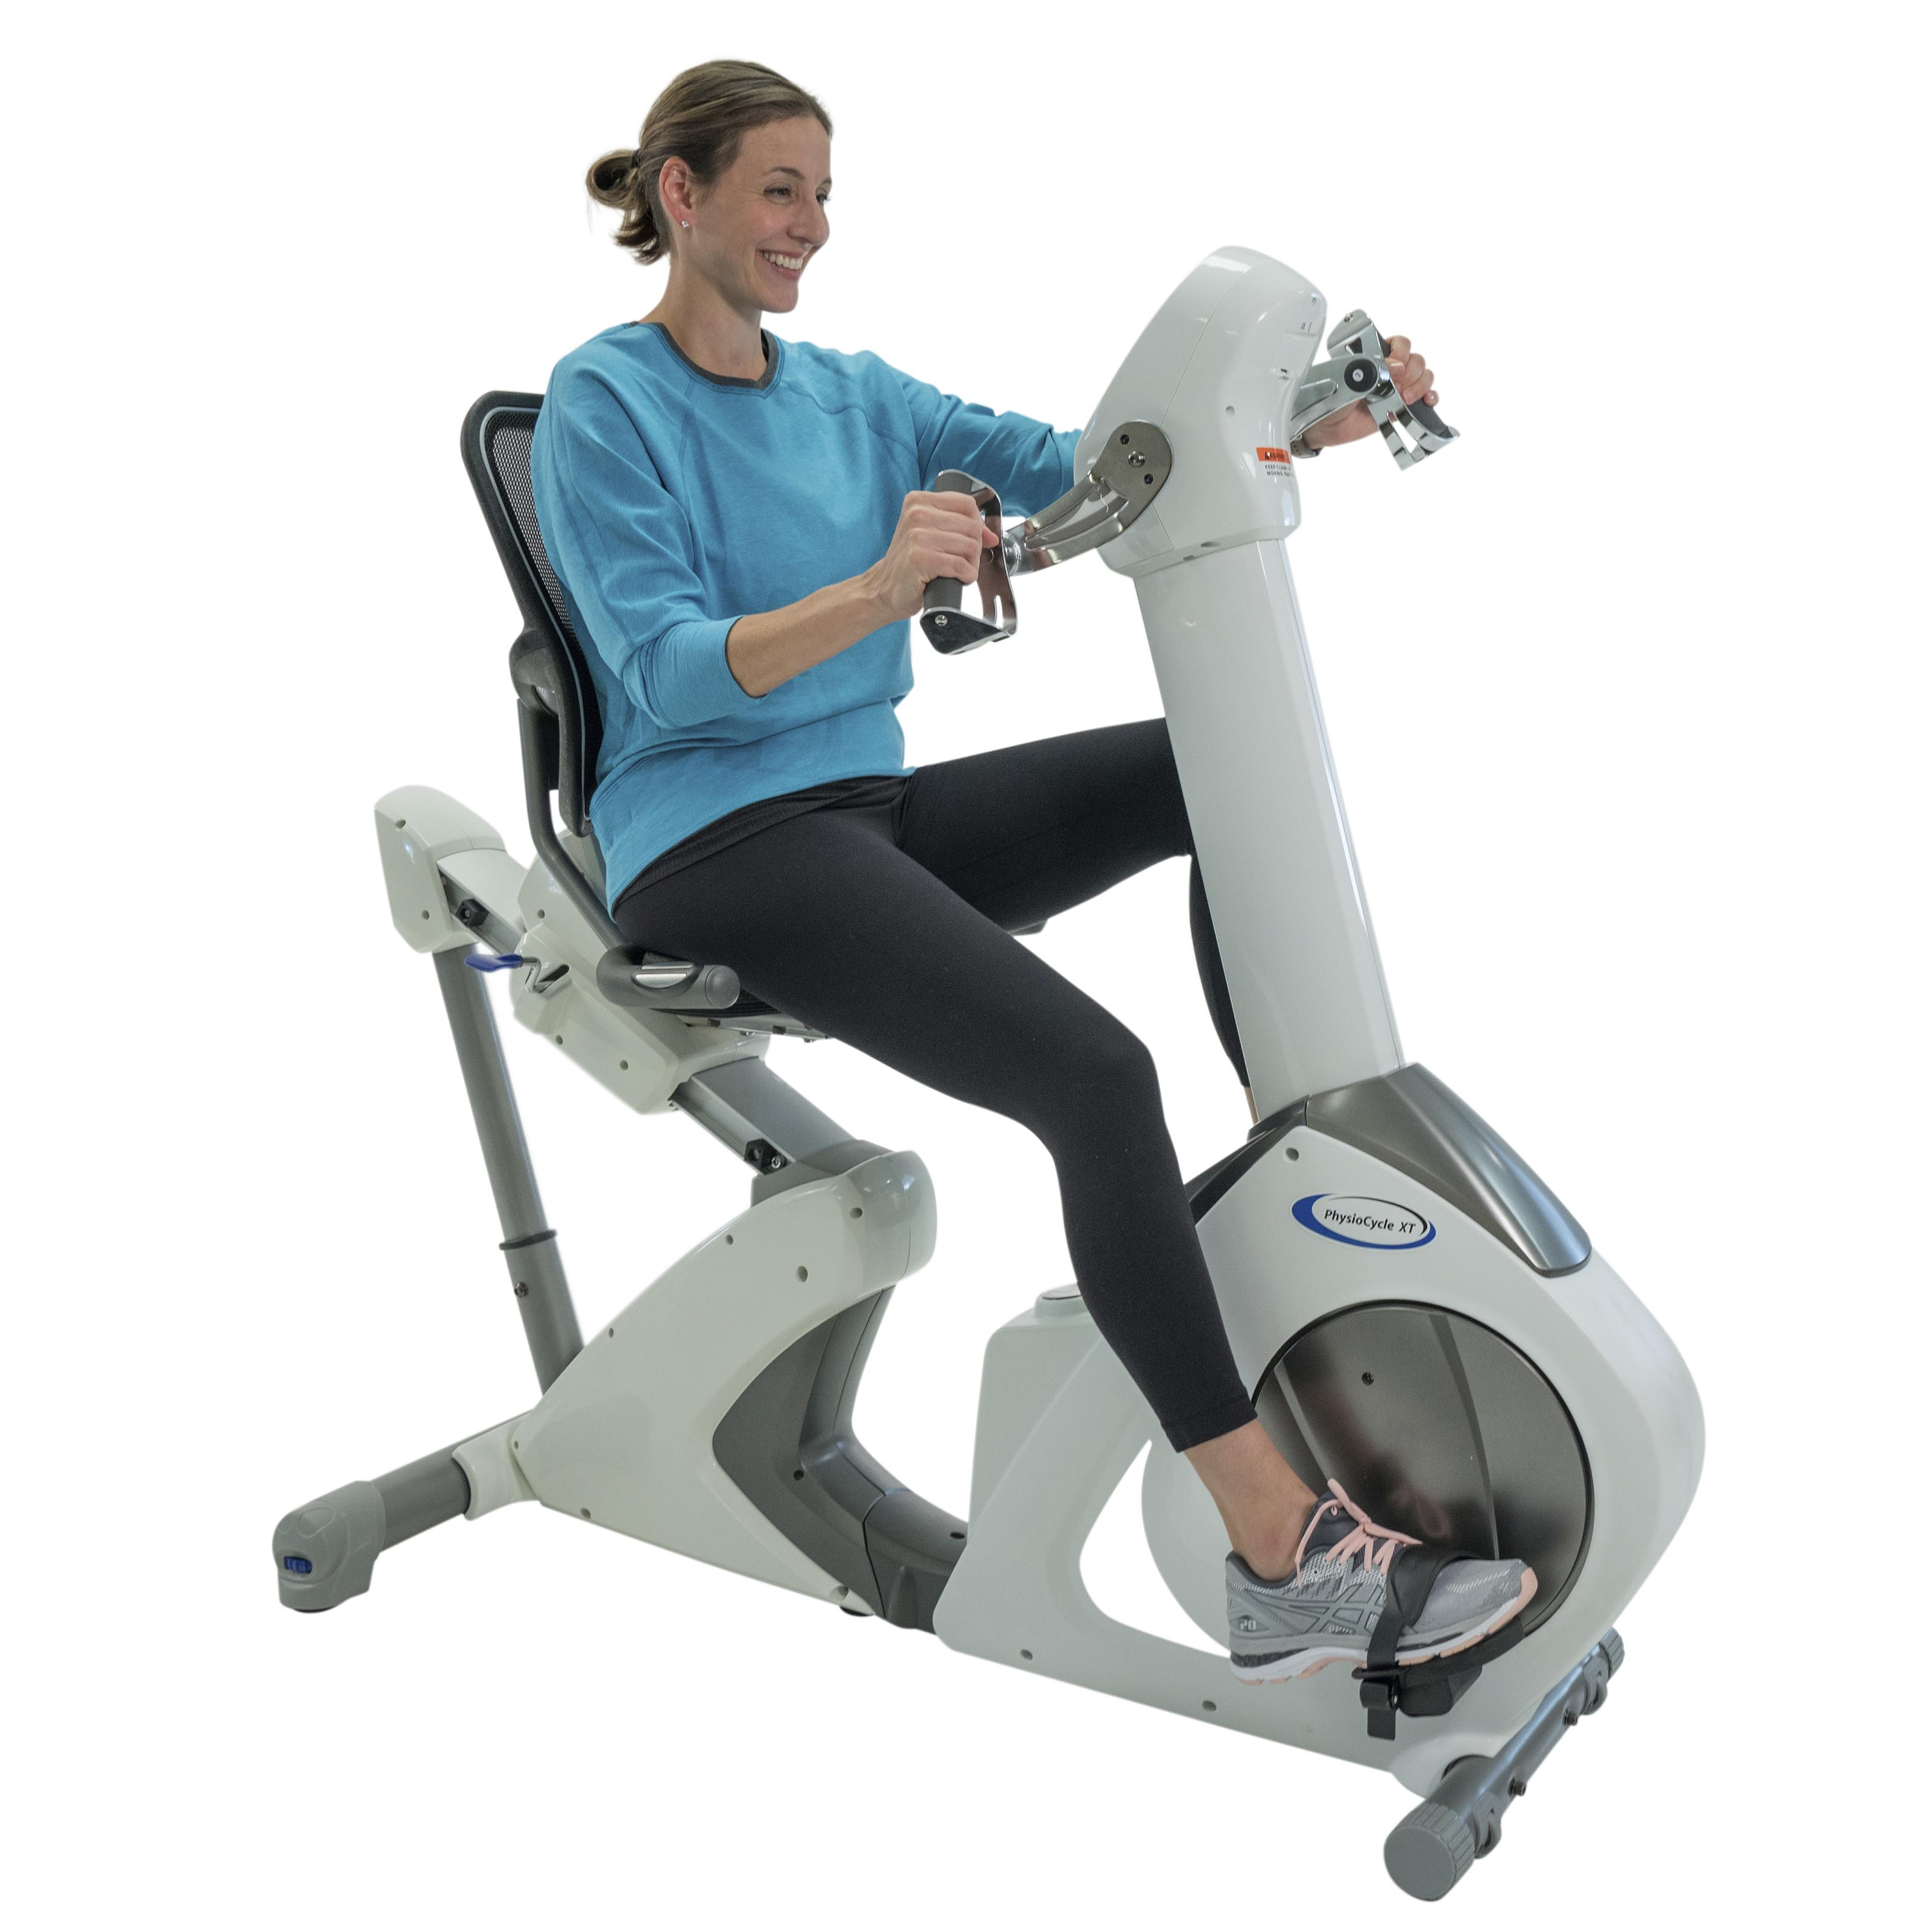 PhysioCycle XT In Use Recumbent Total Body Exercise Bike